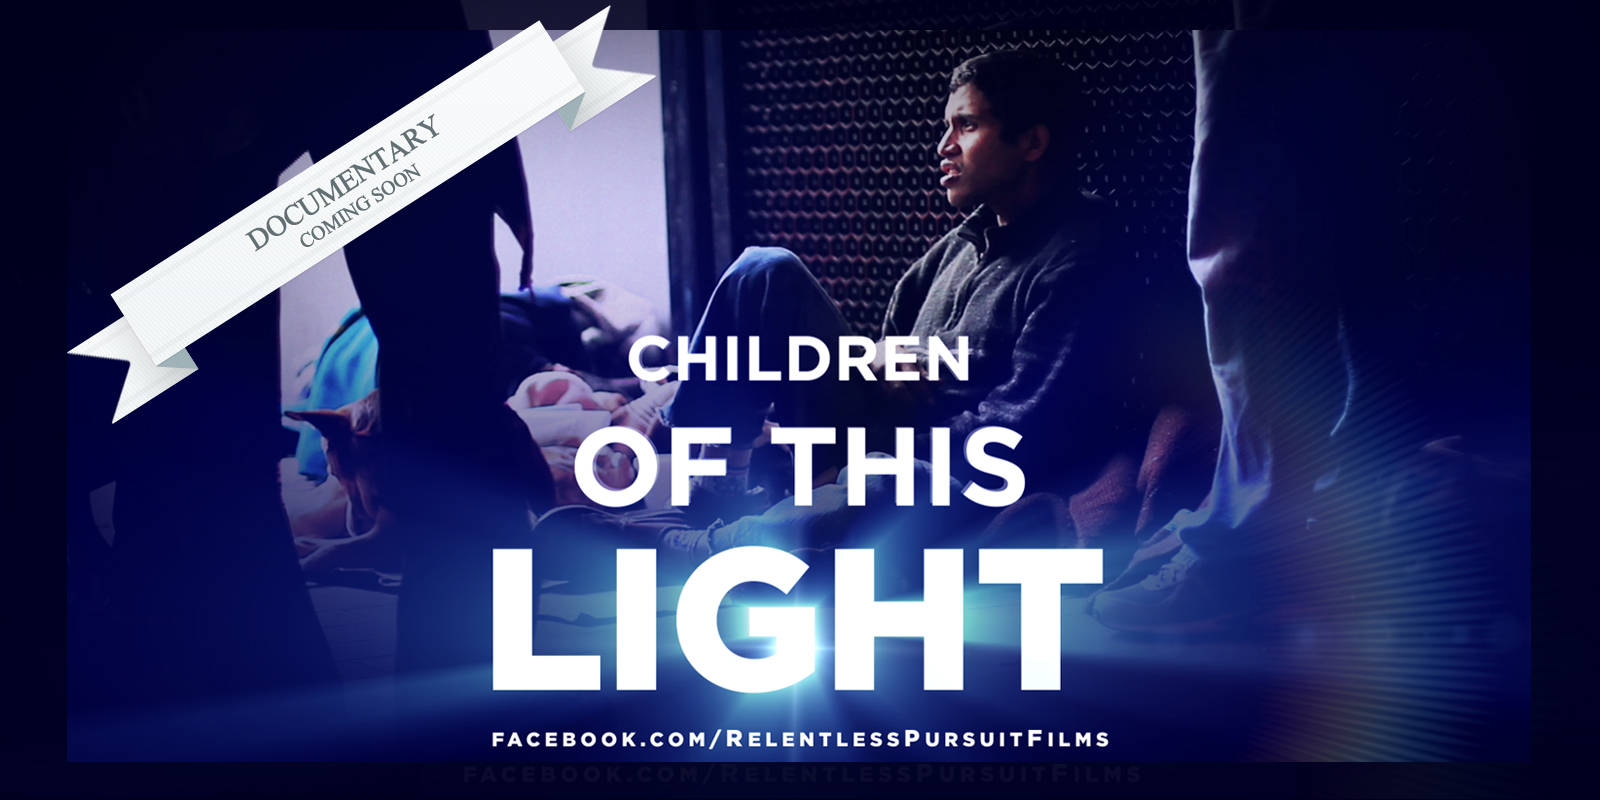 Children-of-this-Light-coming-soon-documentary-3